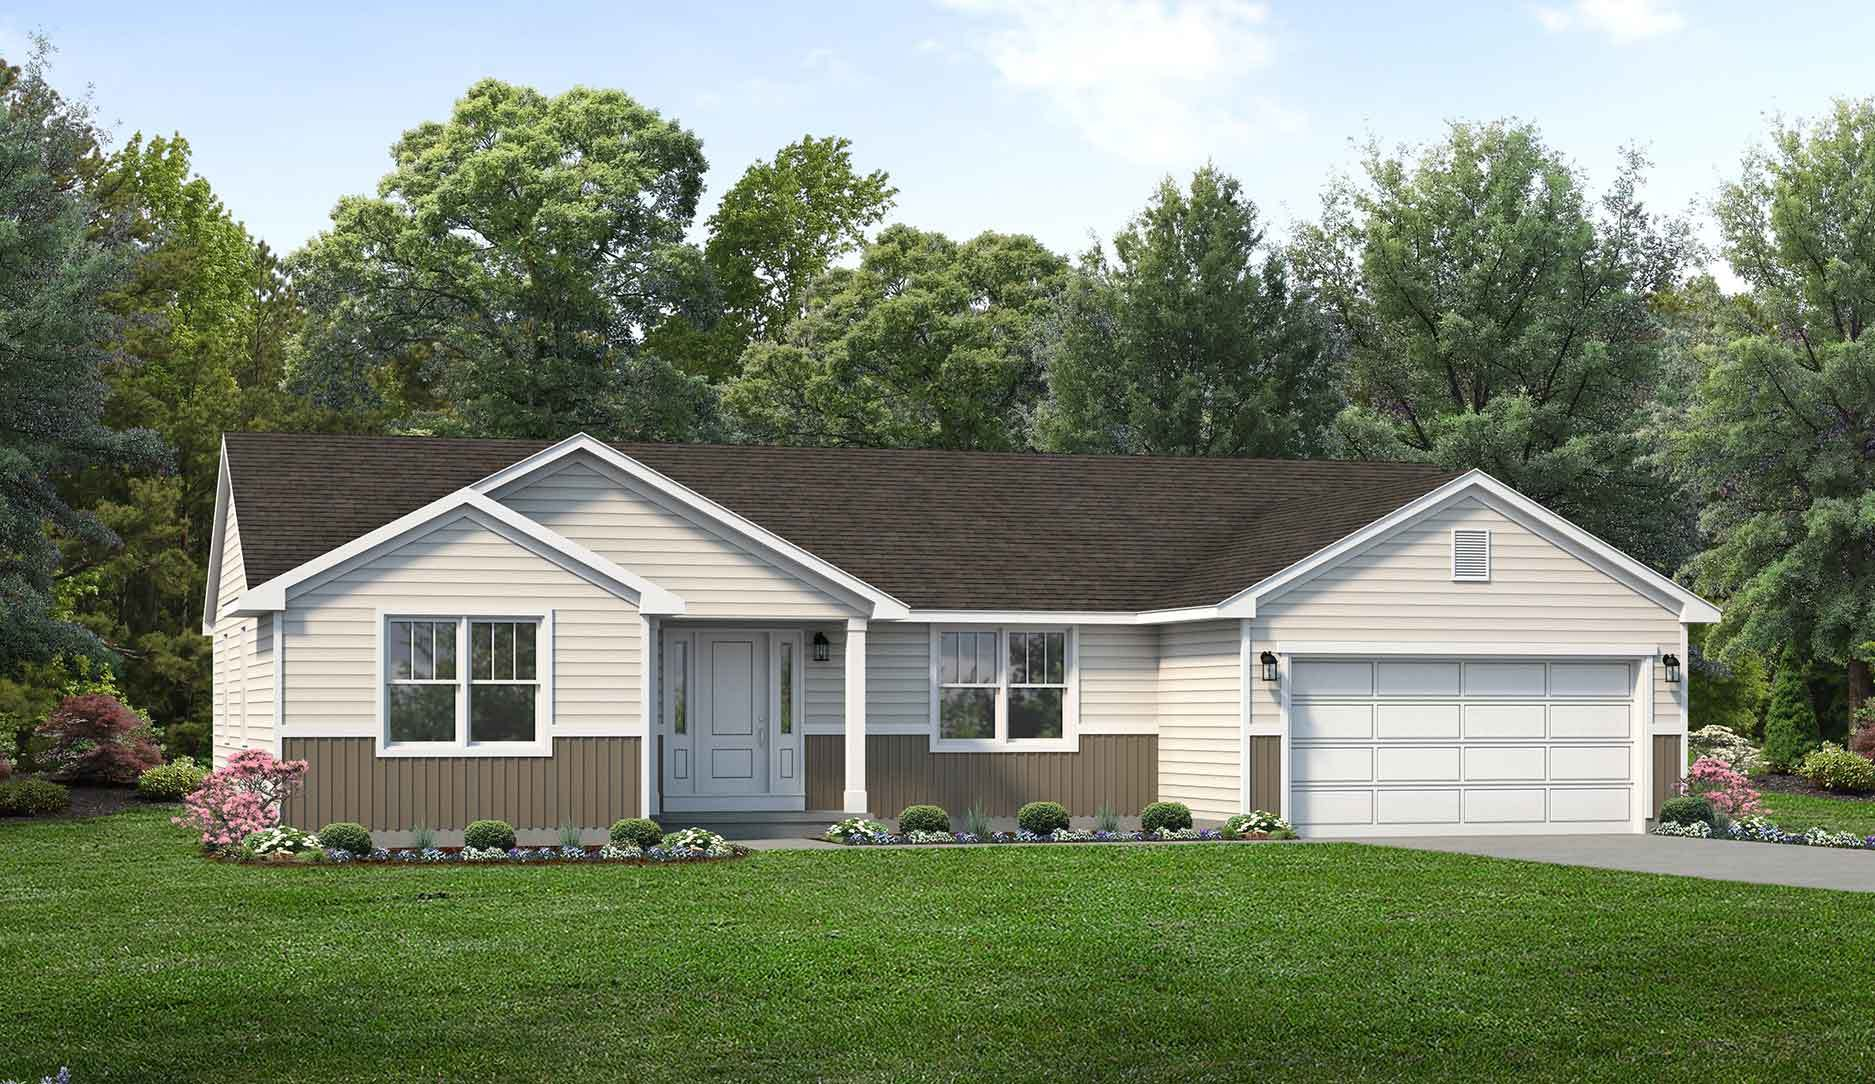 Exterior featured in the Dorchester II By Wayne Homes in Akron, OH